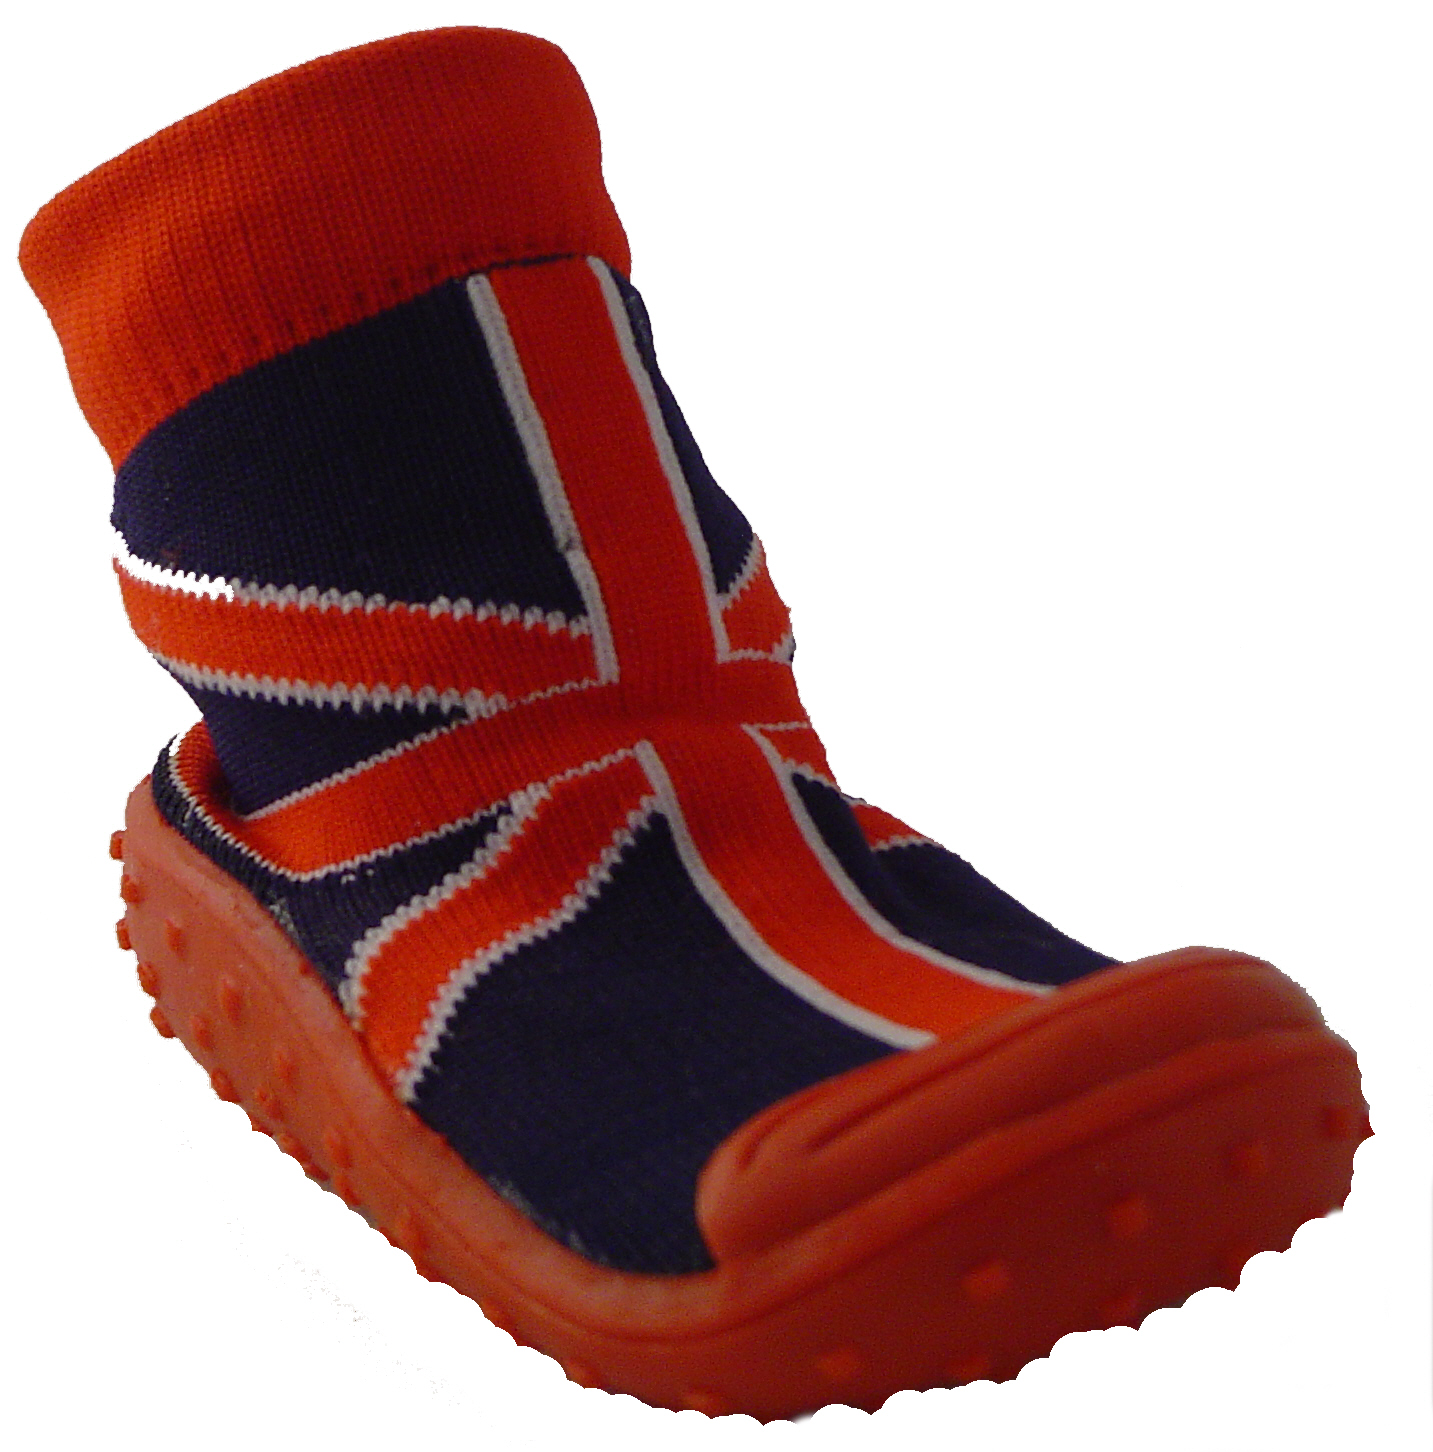 Union Jack BabyShocks from Bical & Footsie 100 Ltd